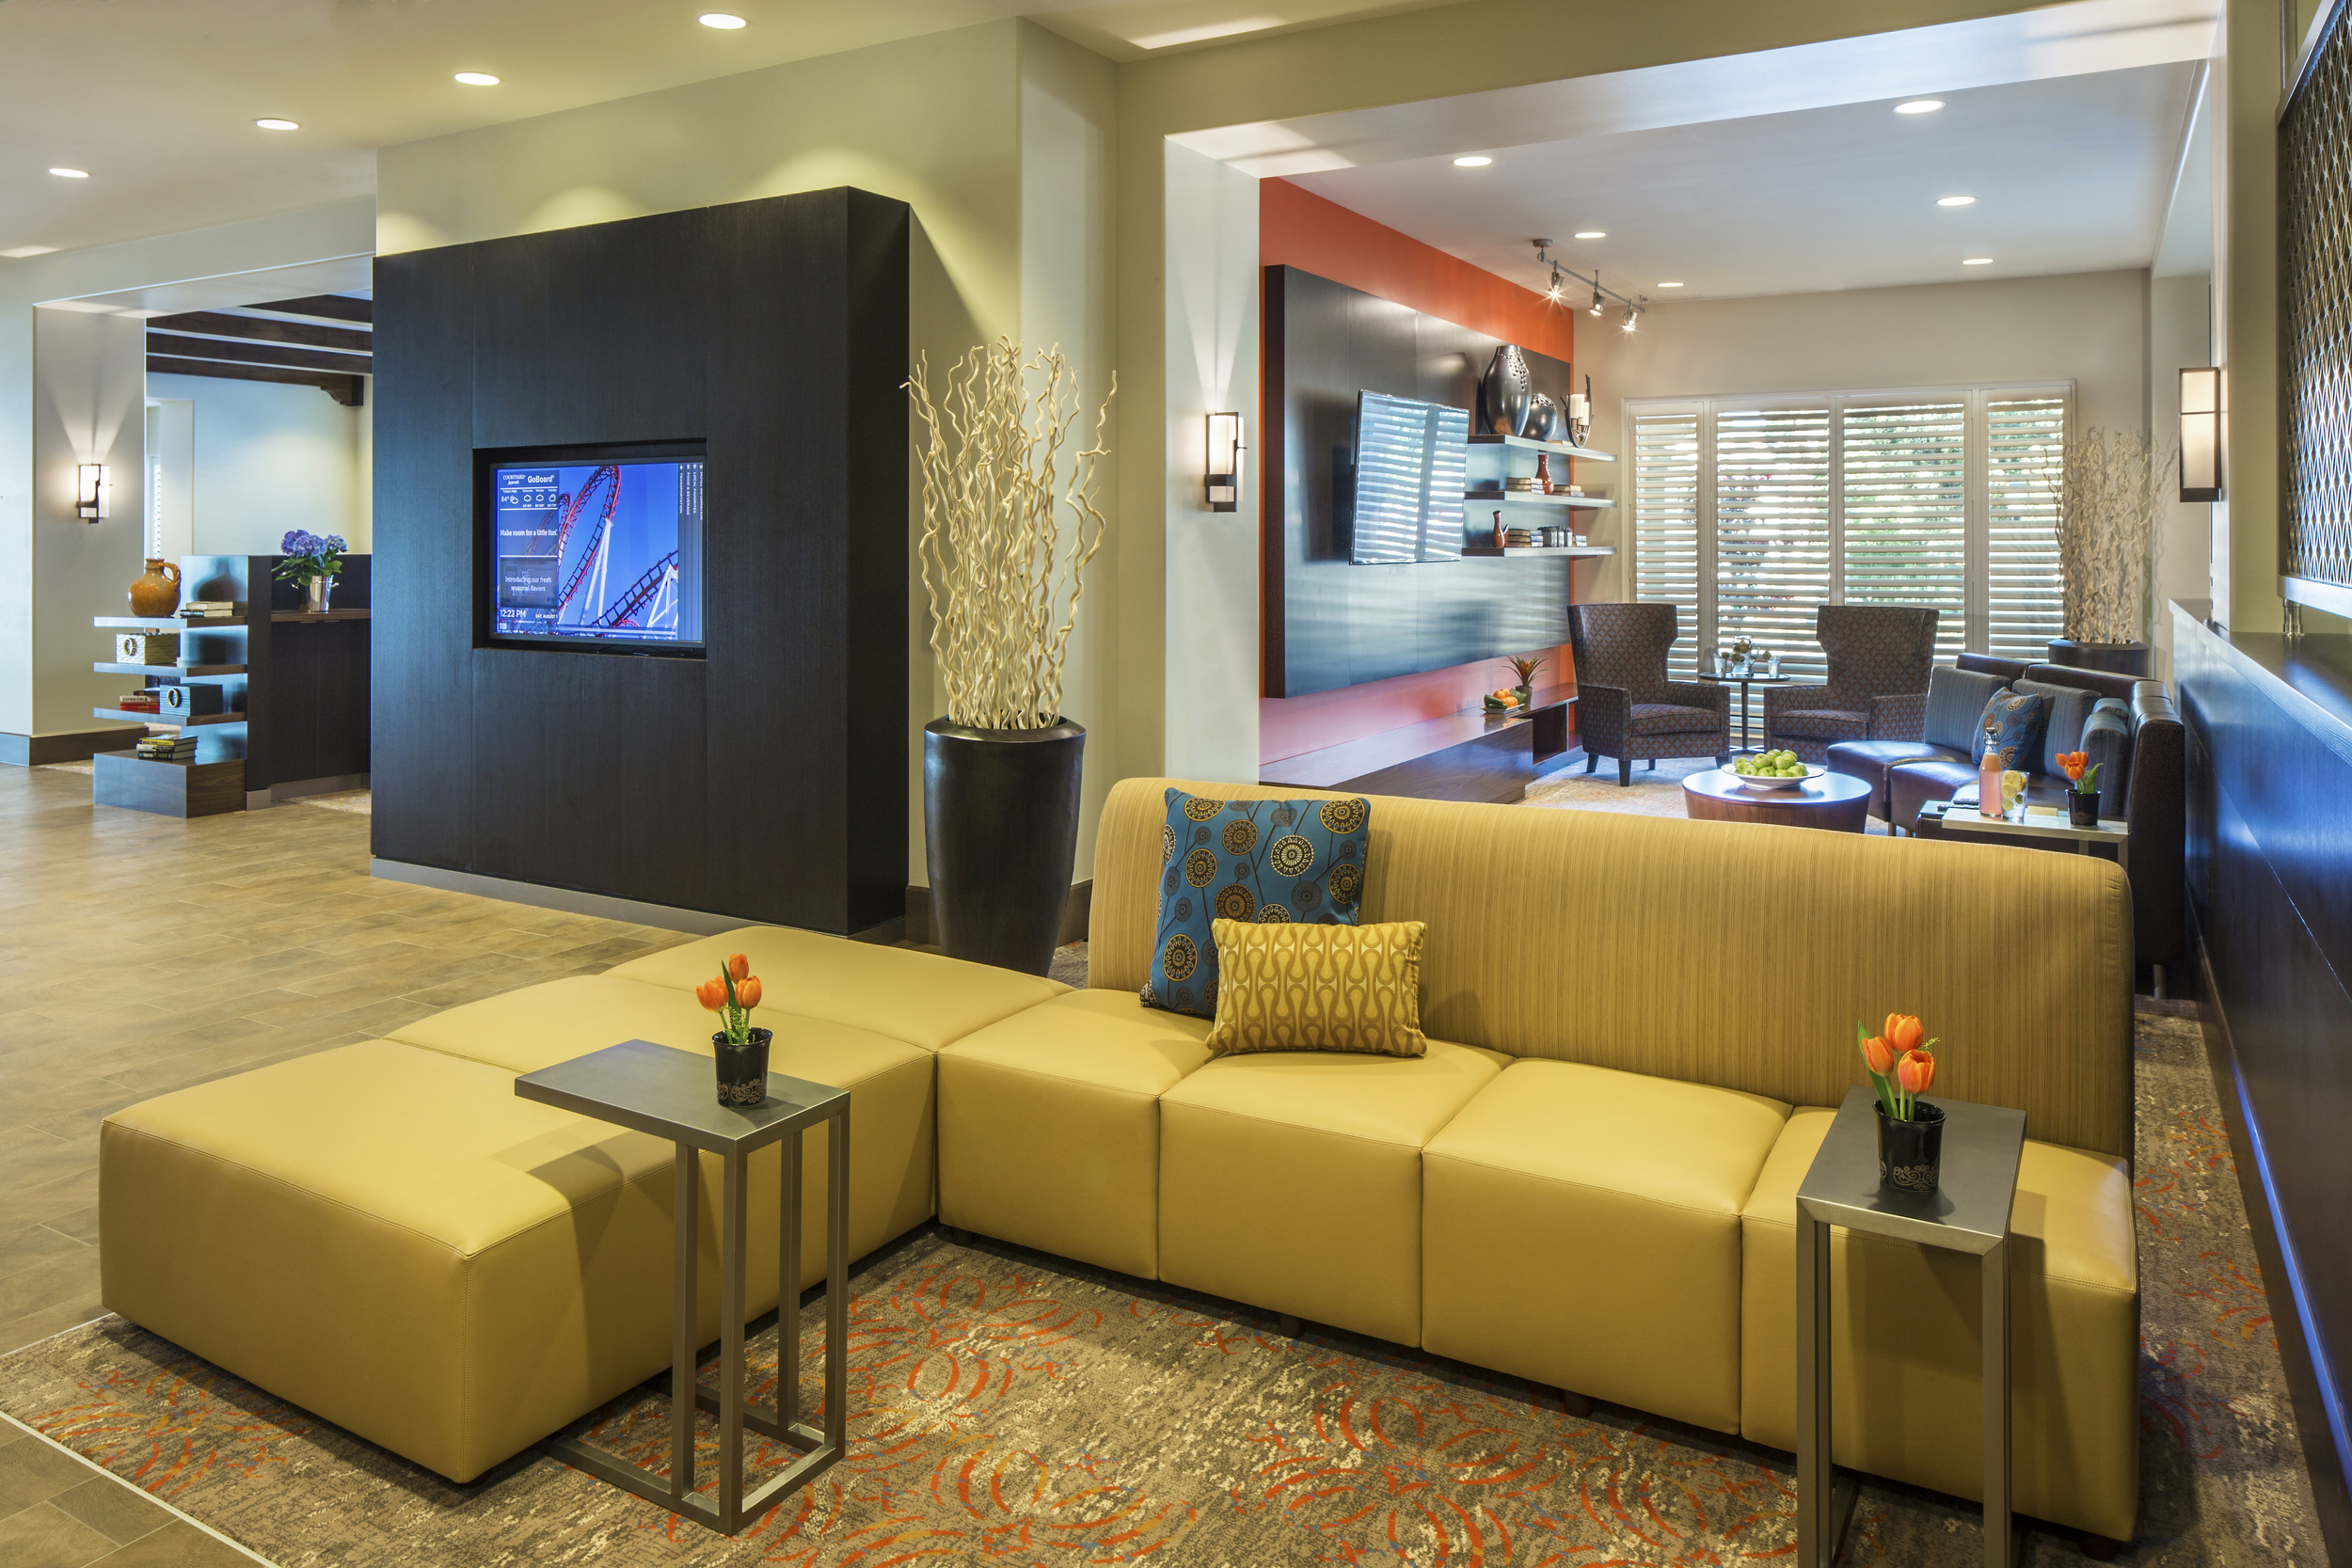 Lobby and Home Theater